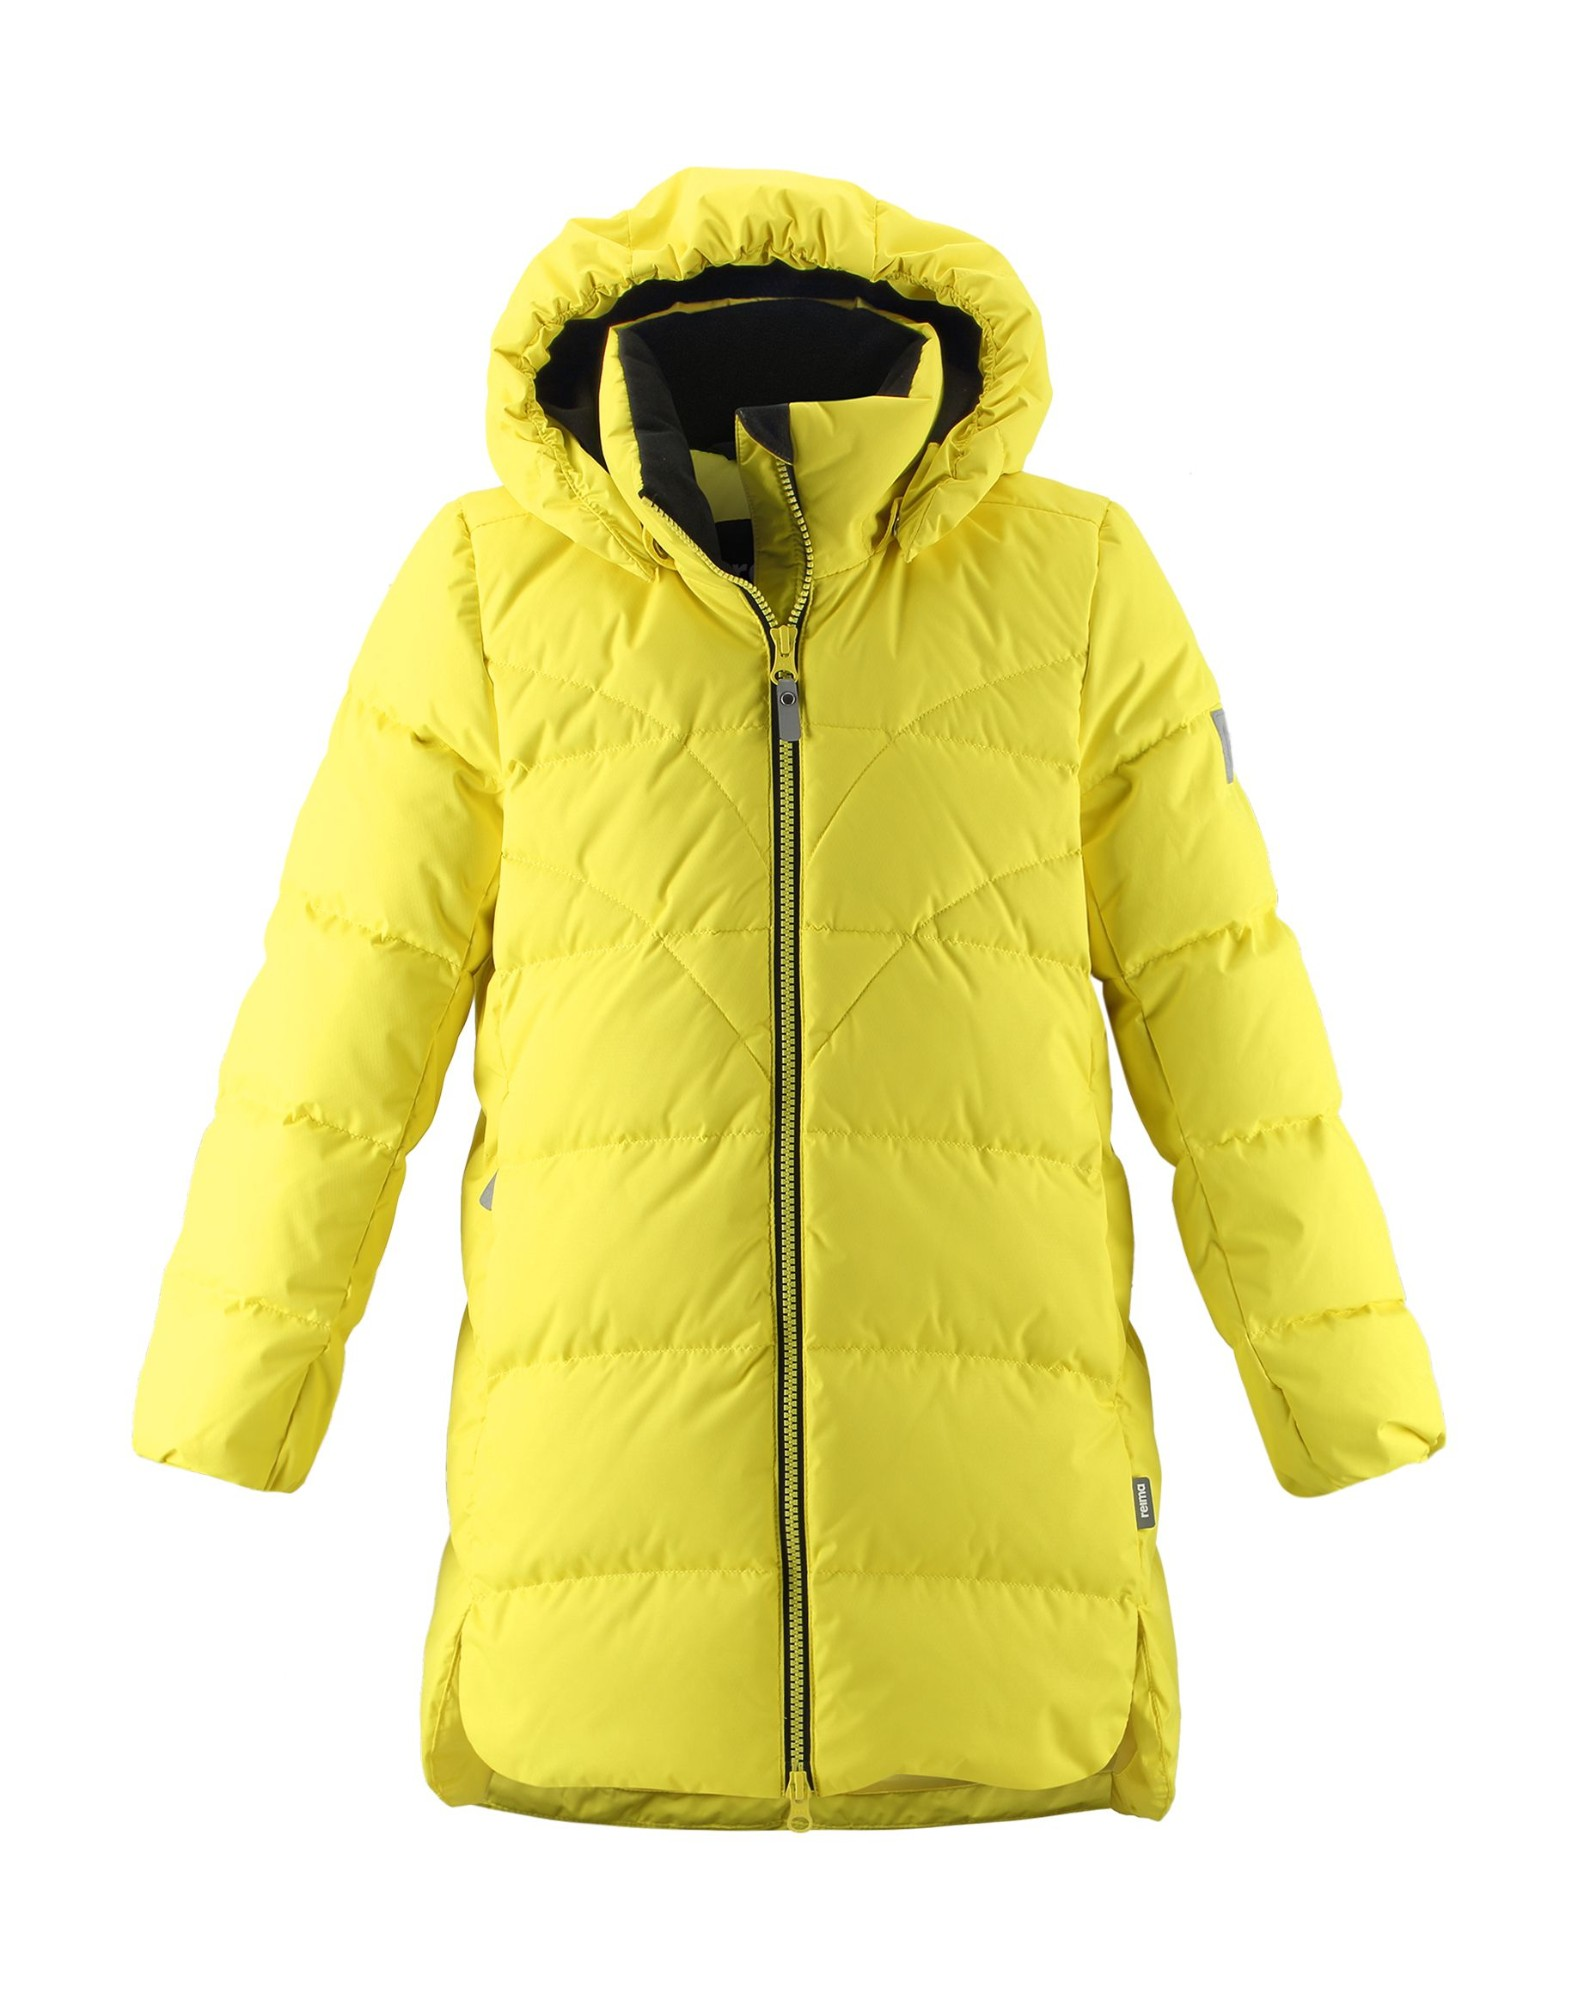 REIMA Ahde Lemon Yellow 128